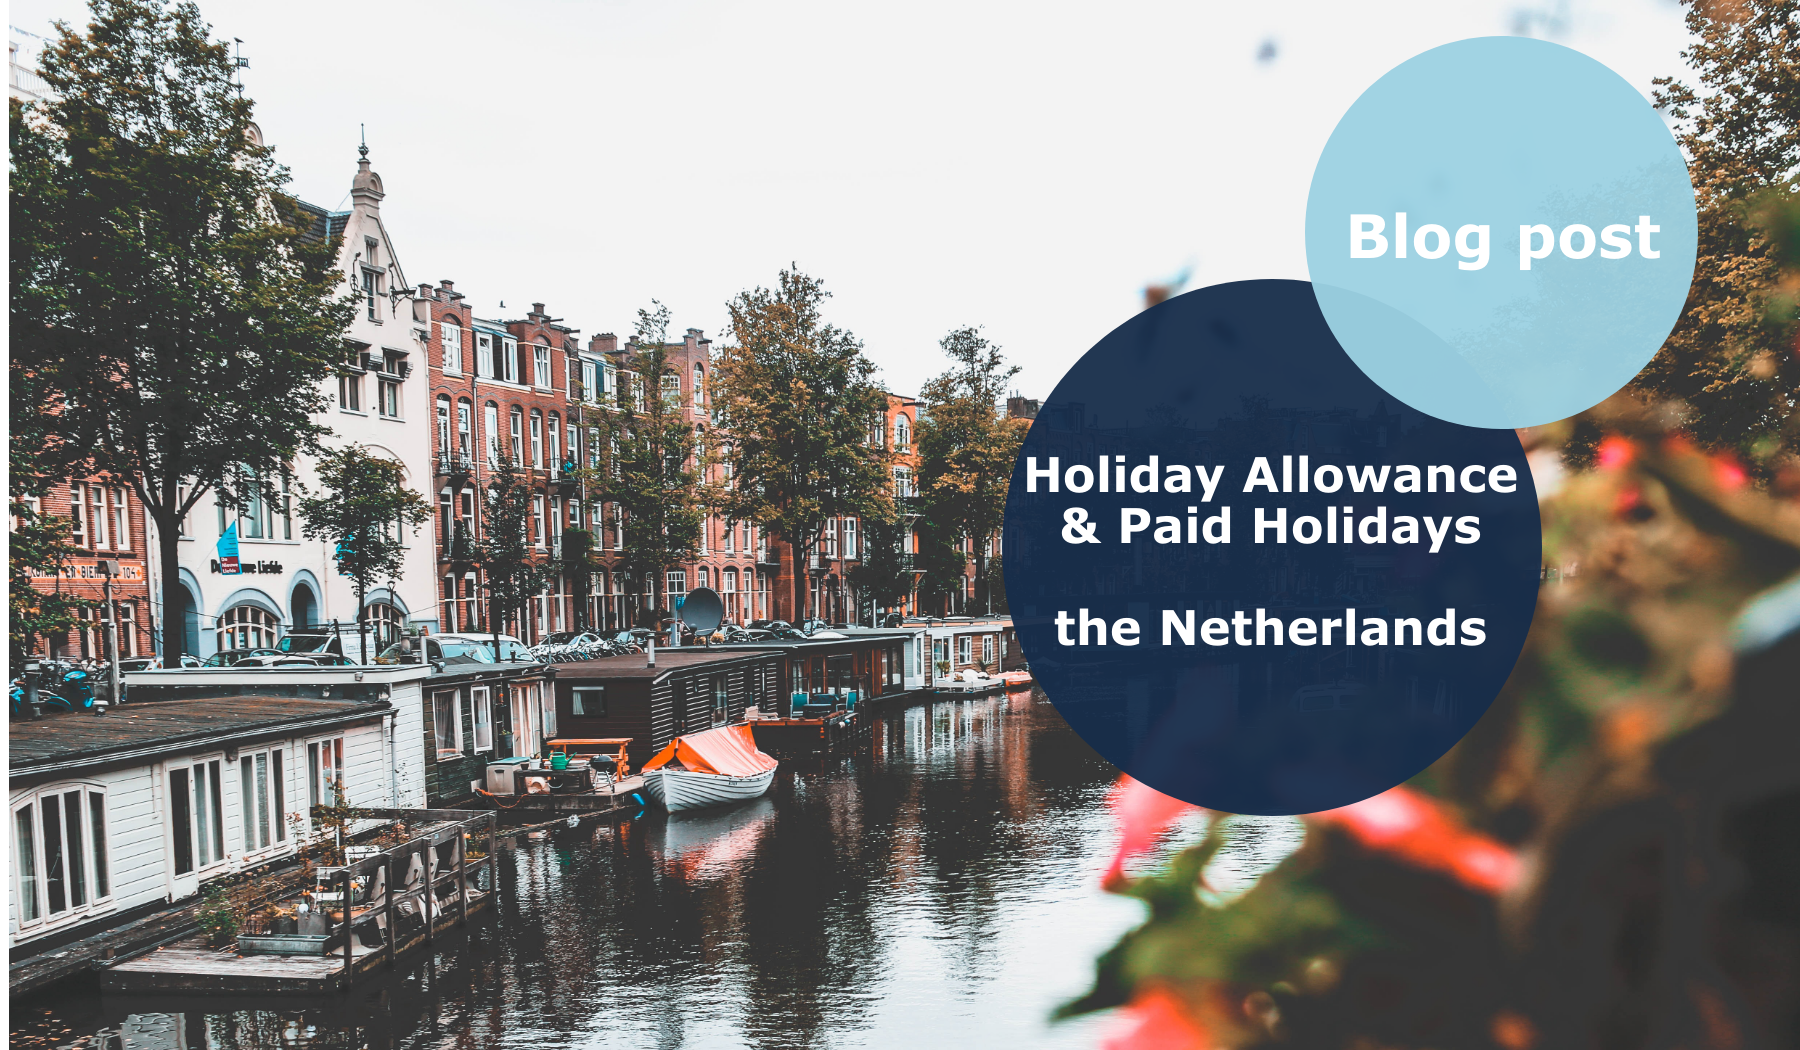 Holiday Allowance and Paid Holidays in the Netherlands